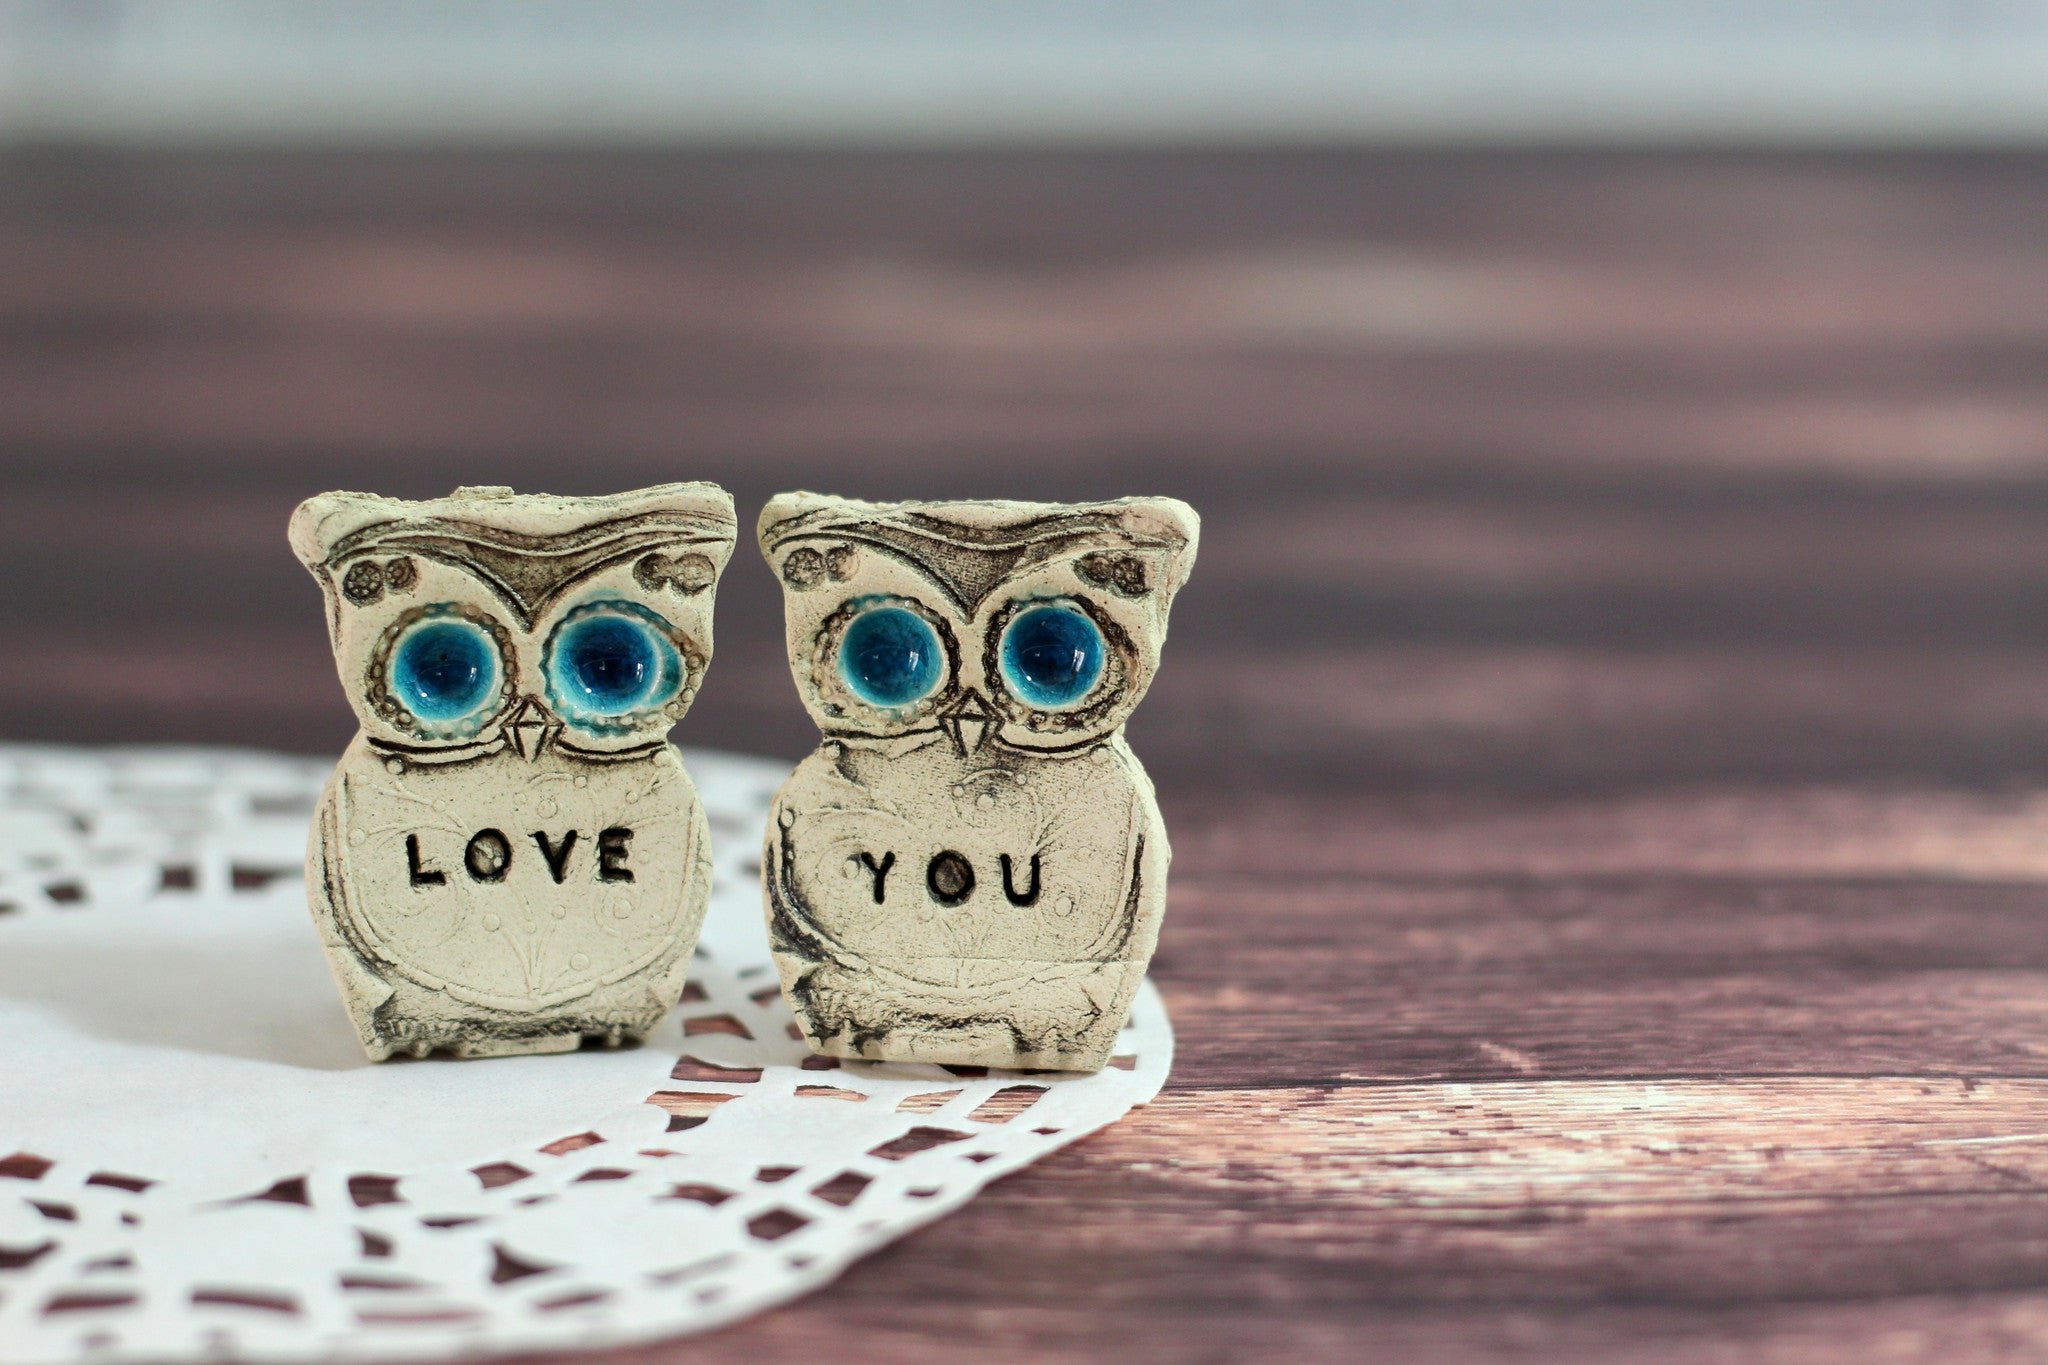 Love you owls - Ceramics By Orly  - 1